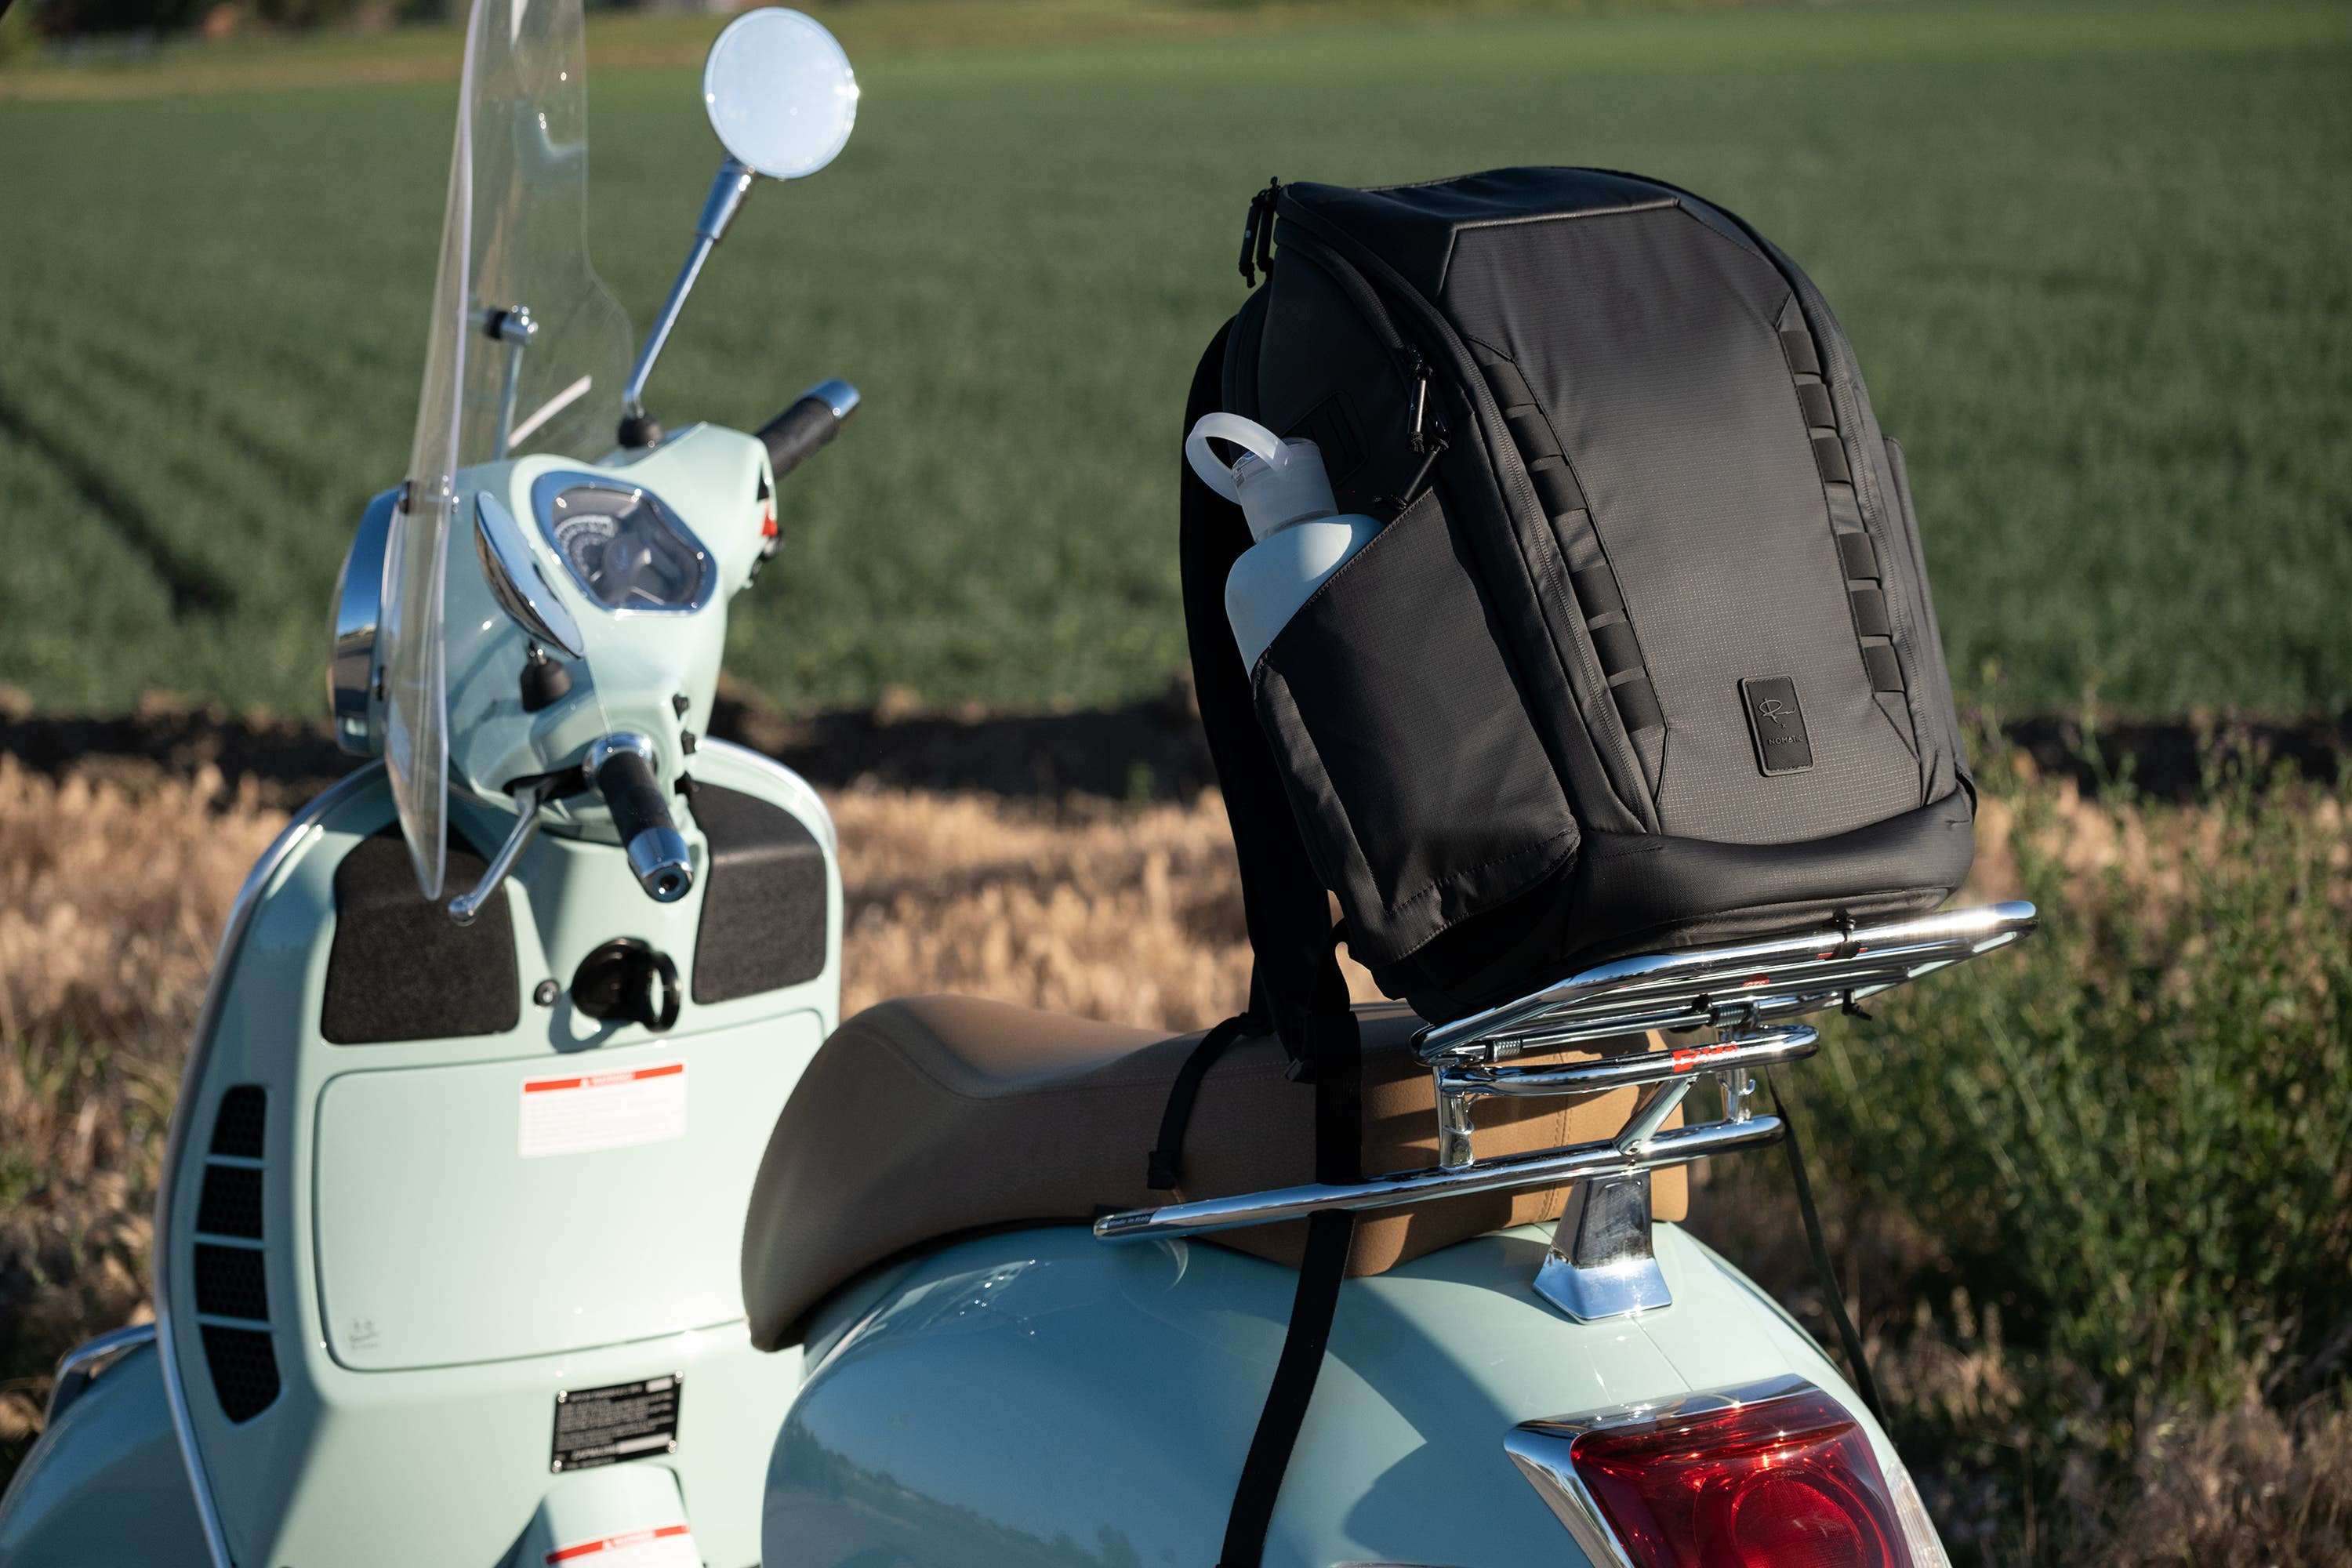 Innovative Design. Lot's of Potential. Nomatic Everyday Backpack Review